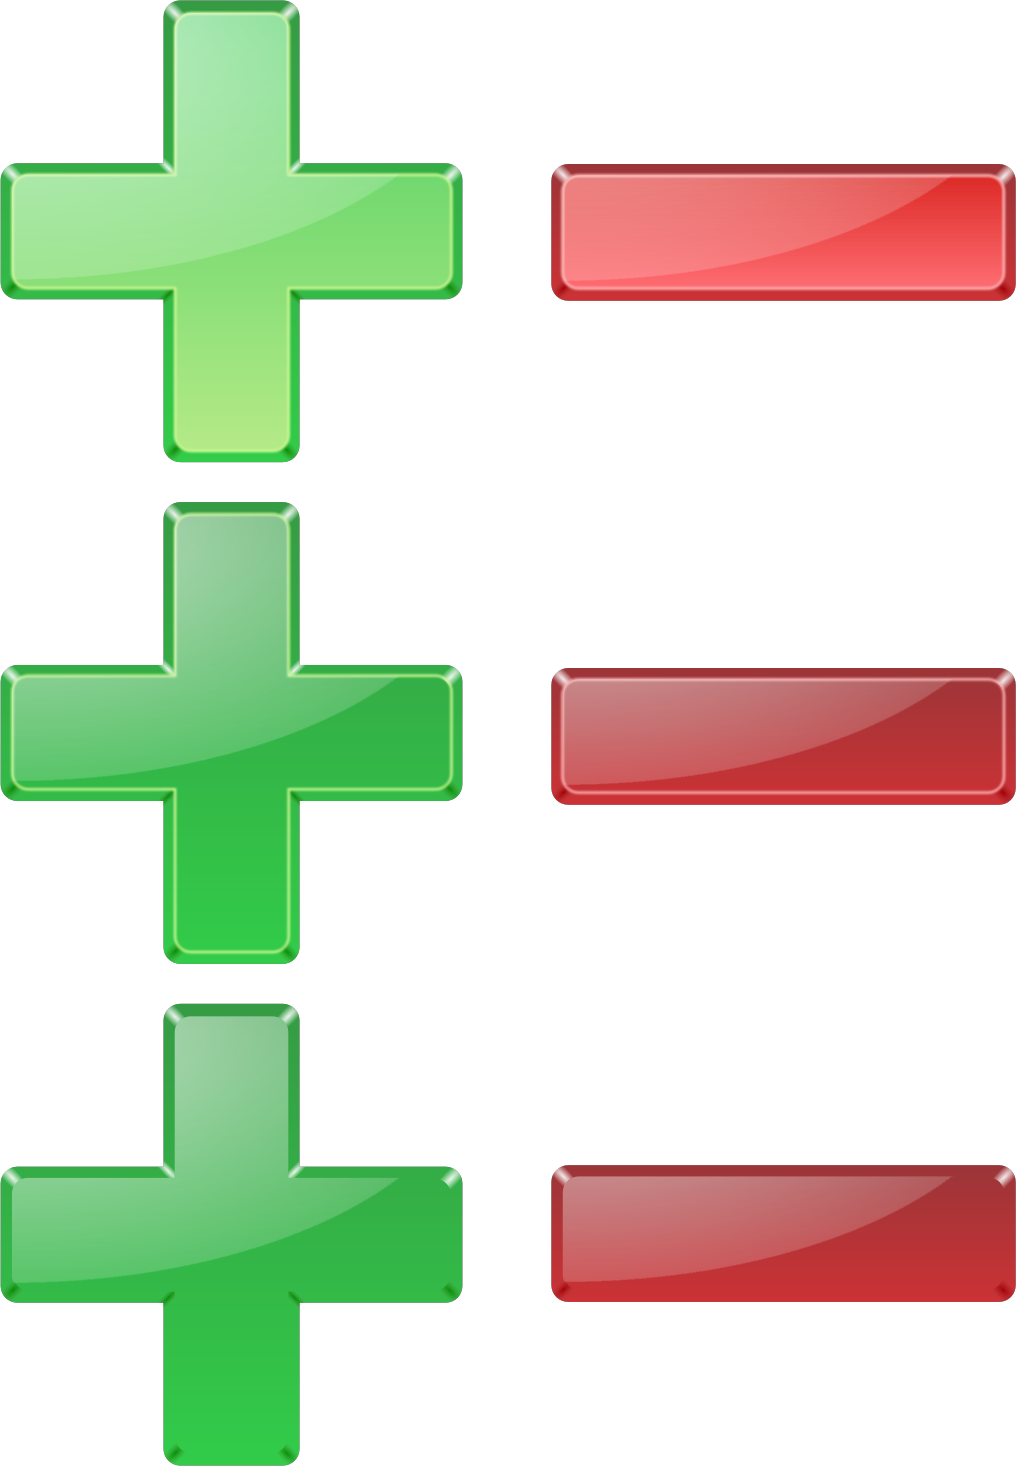 Plus and minus png. Icons free downloads this